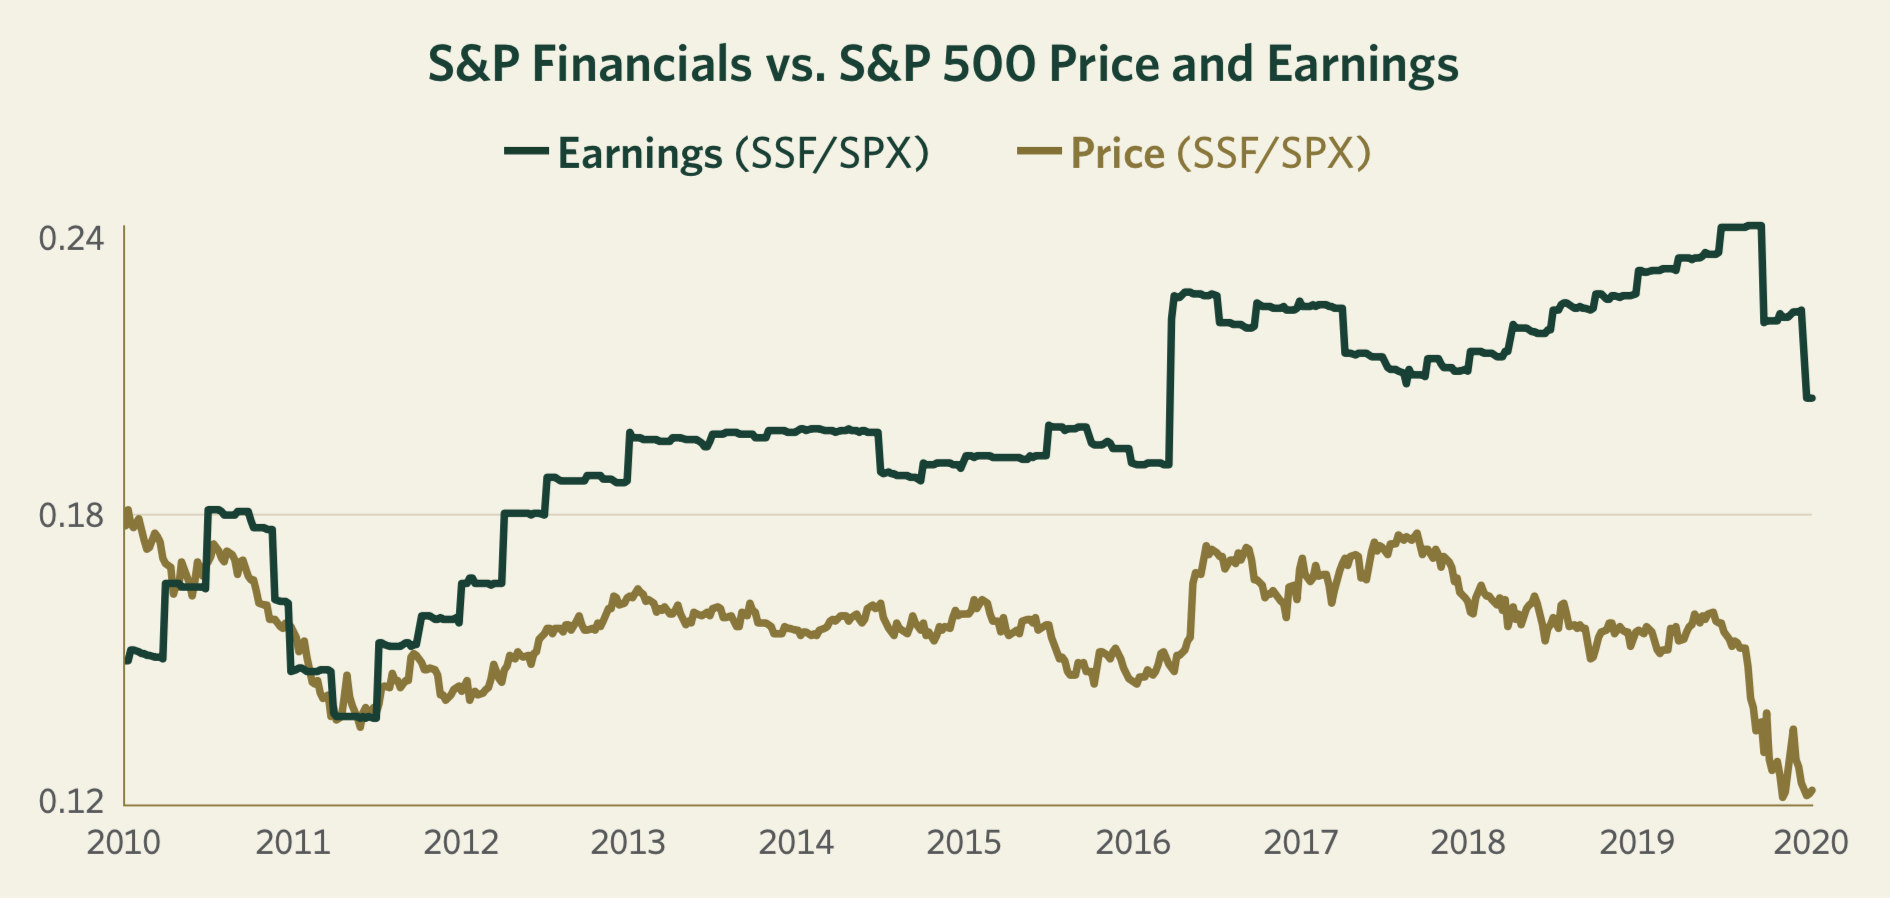 S&P Financials vs. S&P 500 Price and Earnings